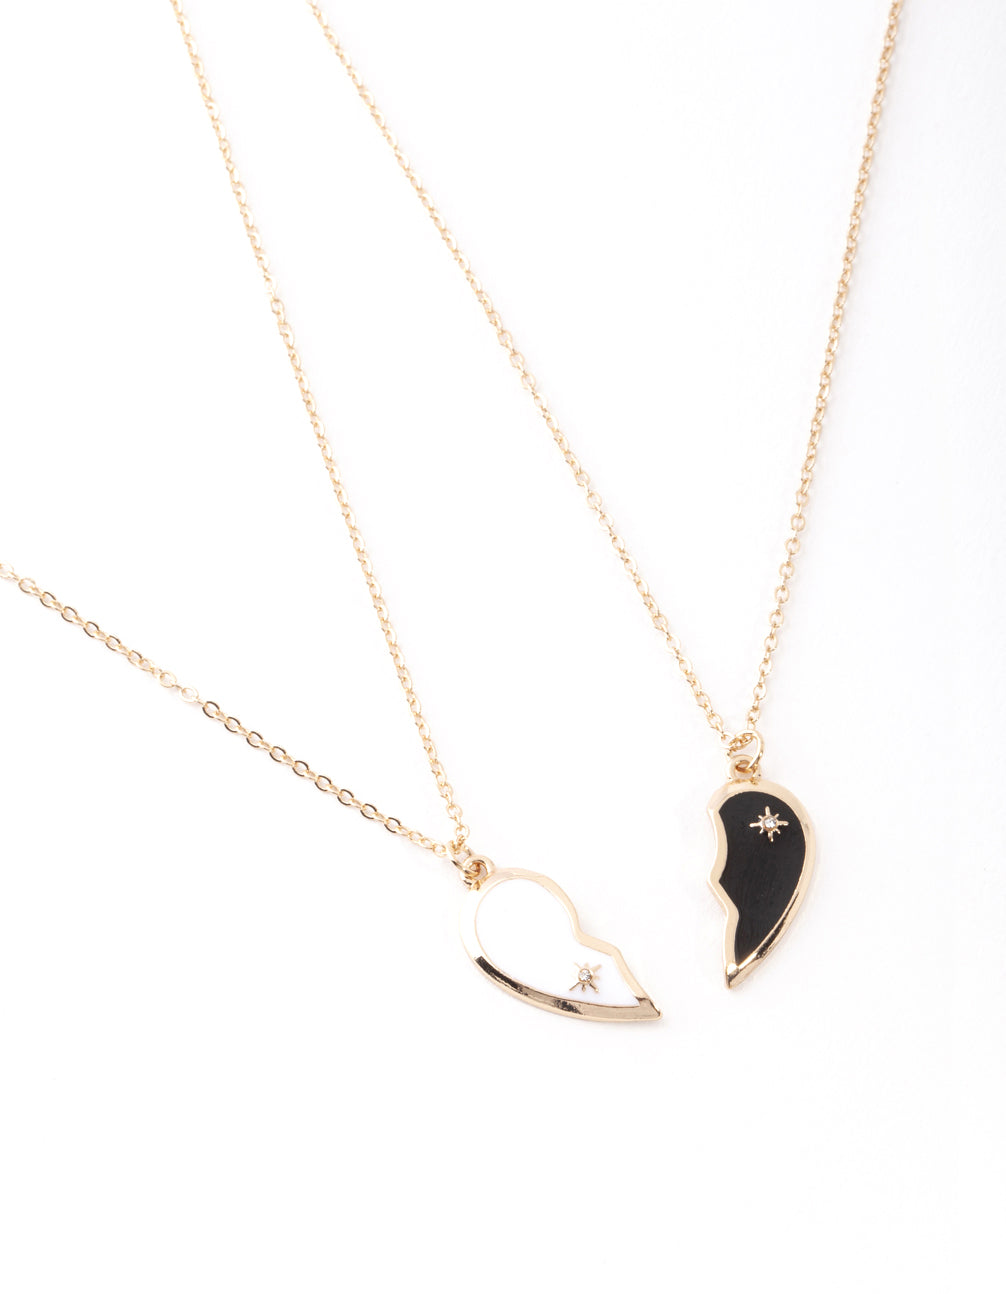 Gold Black and White Half Heart Yin and Yang Necklace 2 Pack